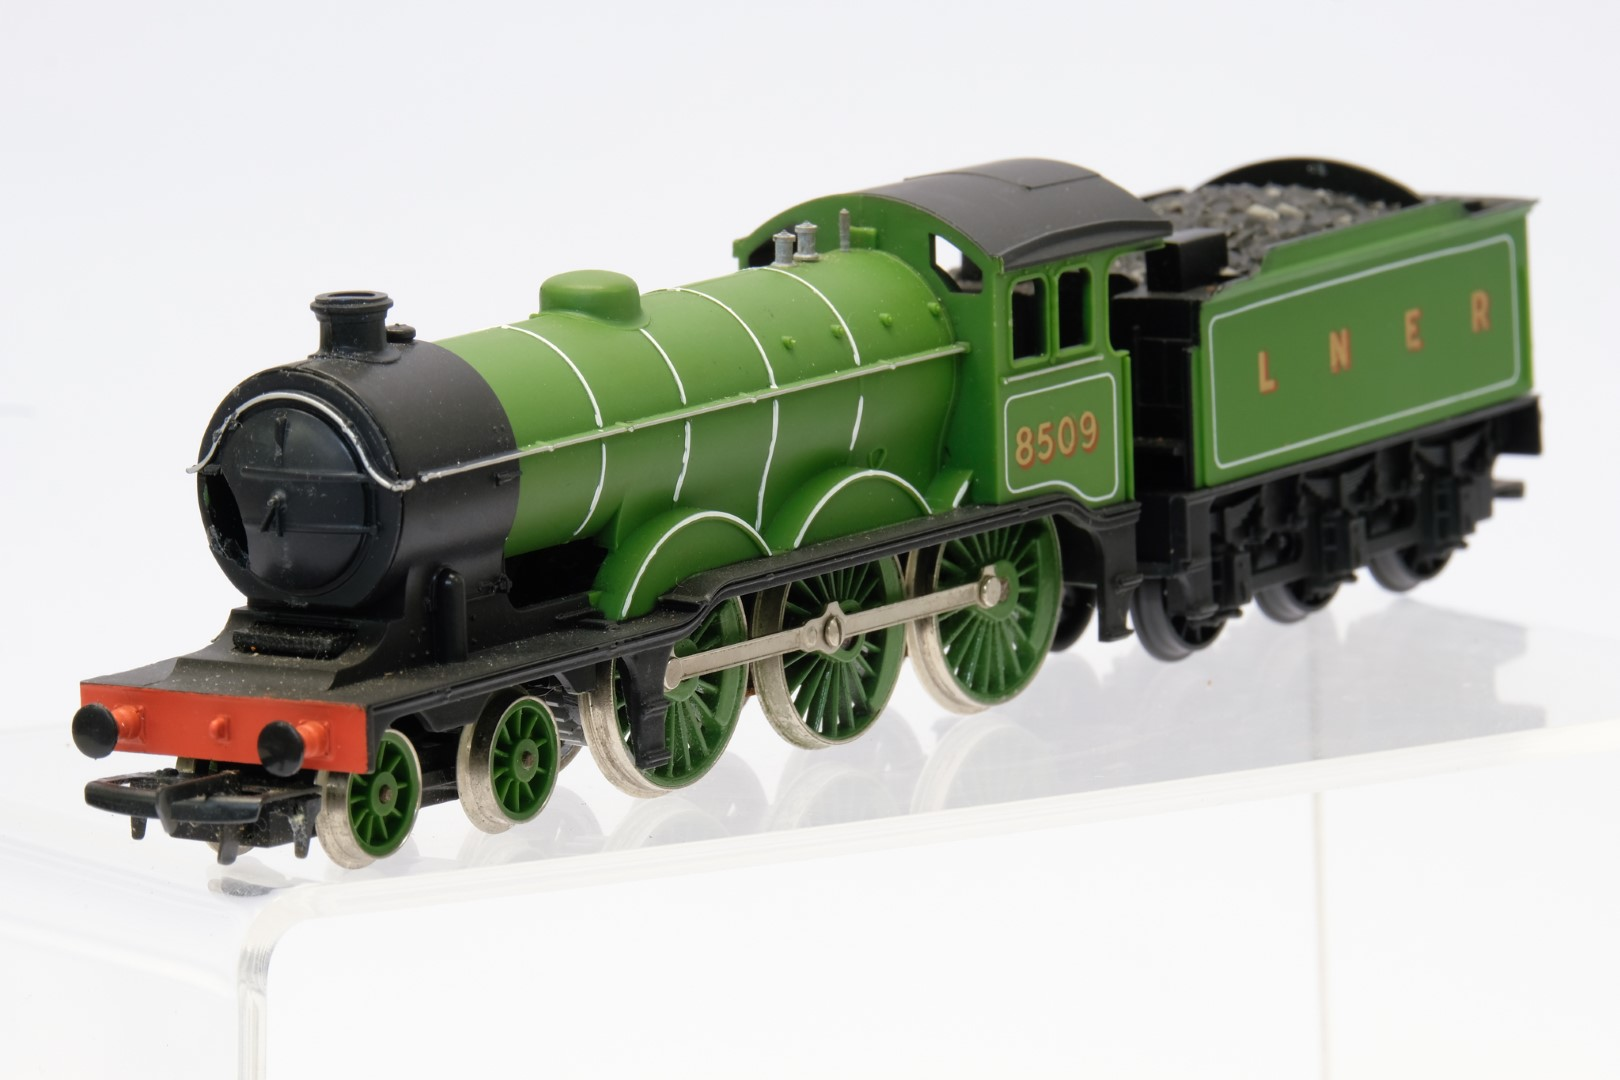 Hornby Class B12 Locomotive And Tender LNER 8509 - No Box - Image 2 of 3